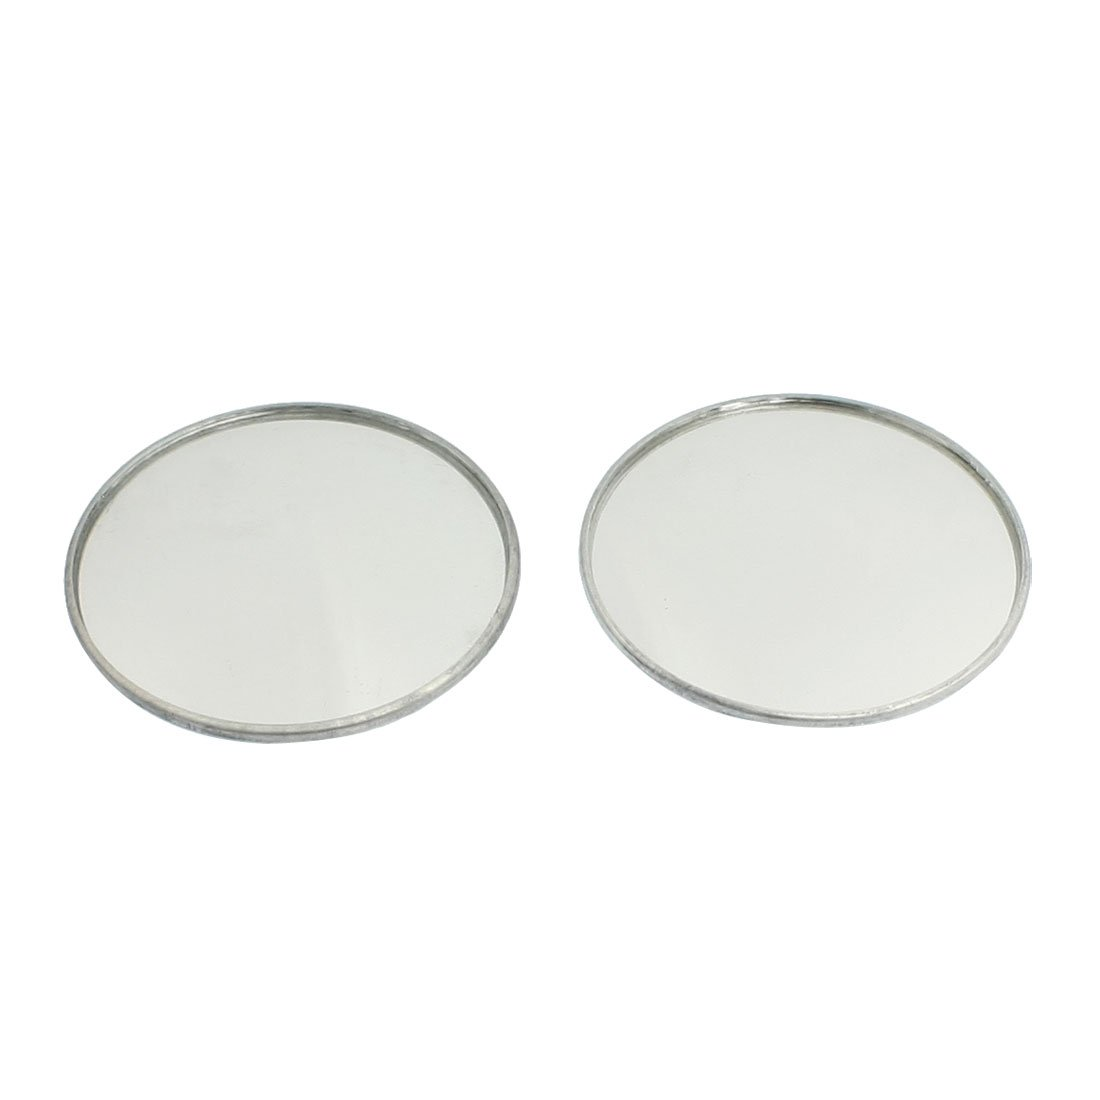 2 Pcs Car Blind Spot Mirror Rearview 2 Side Wide Angle